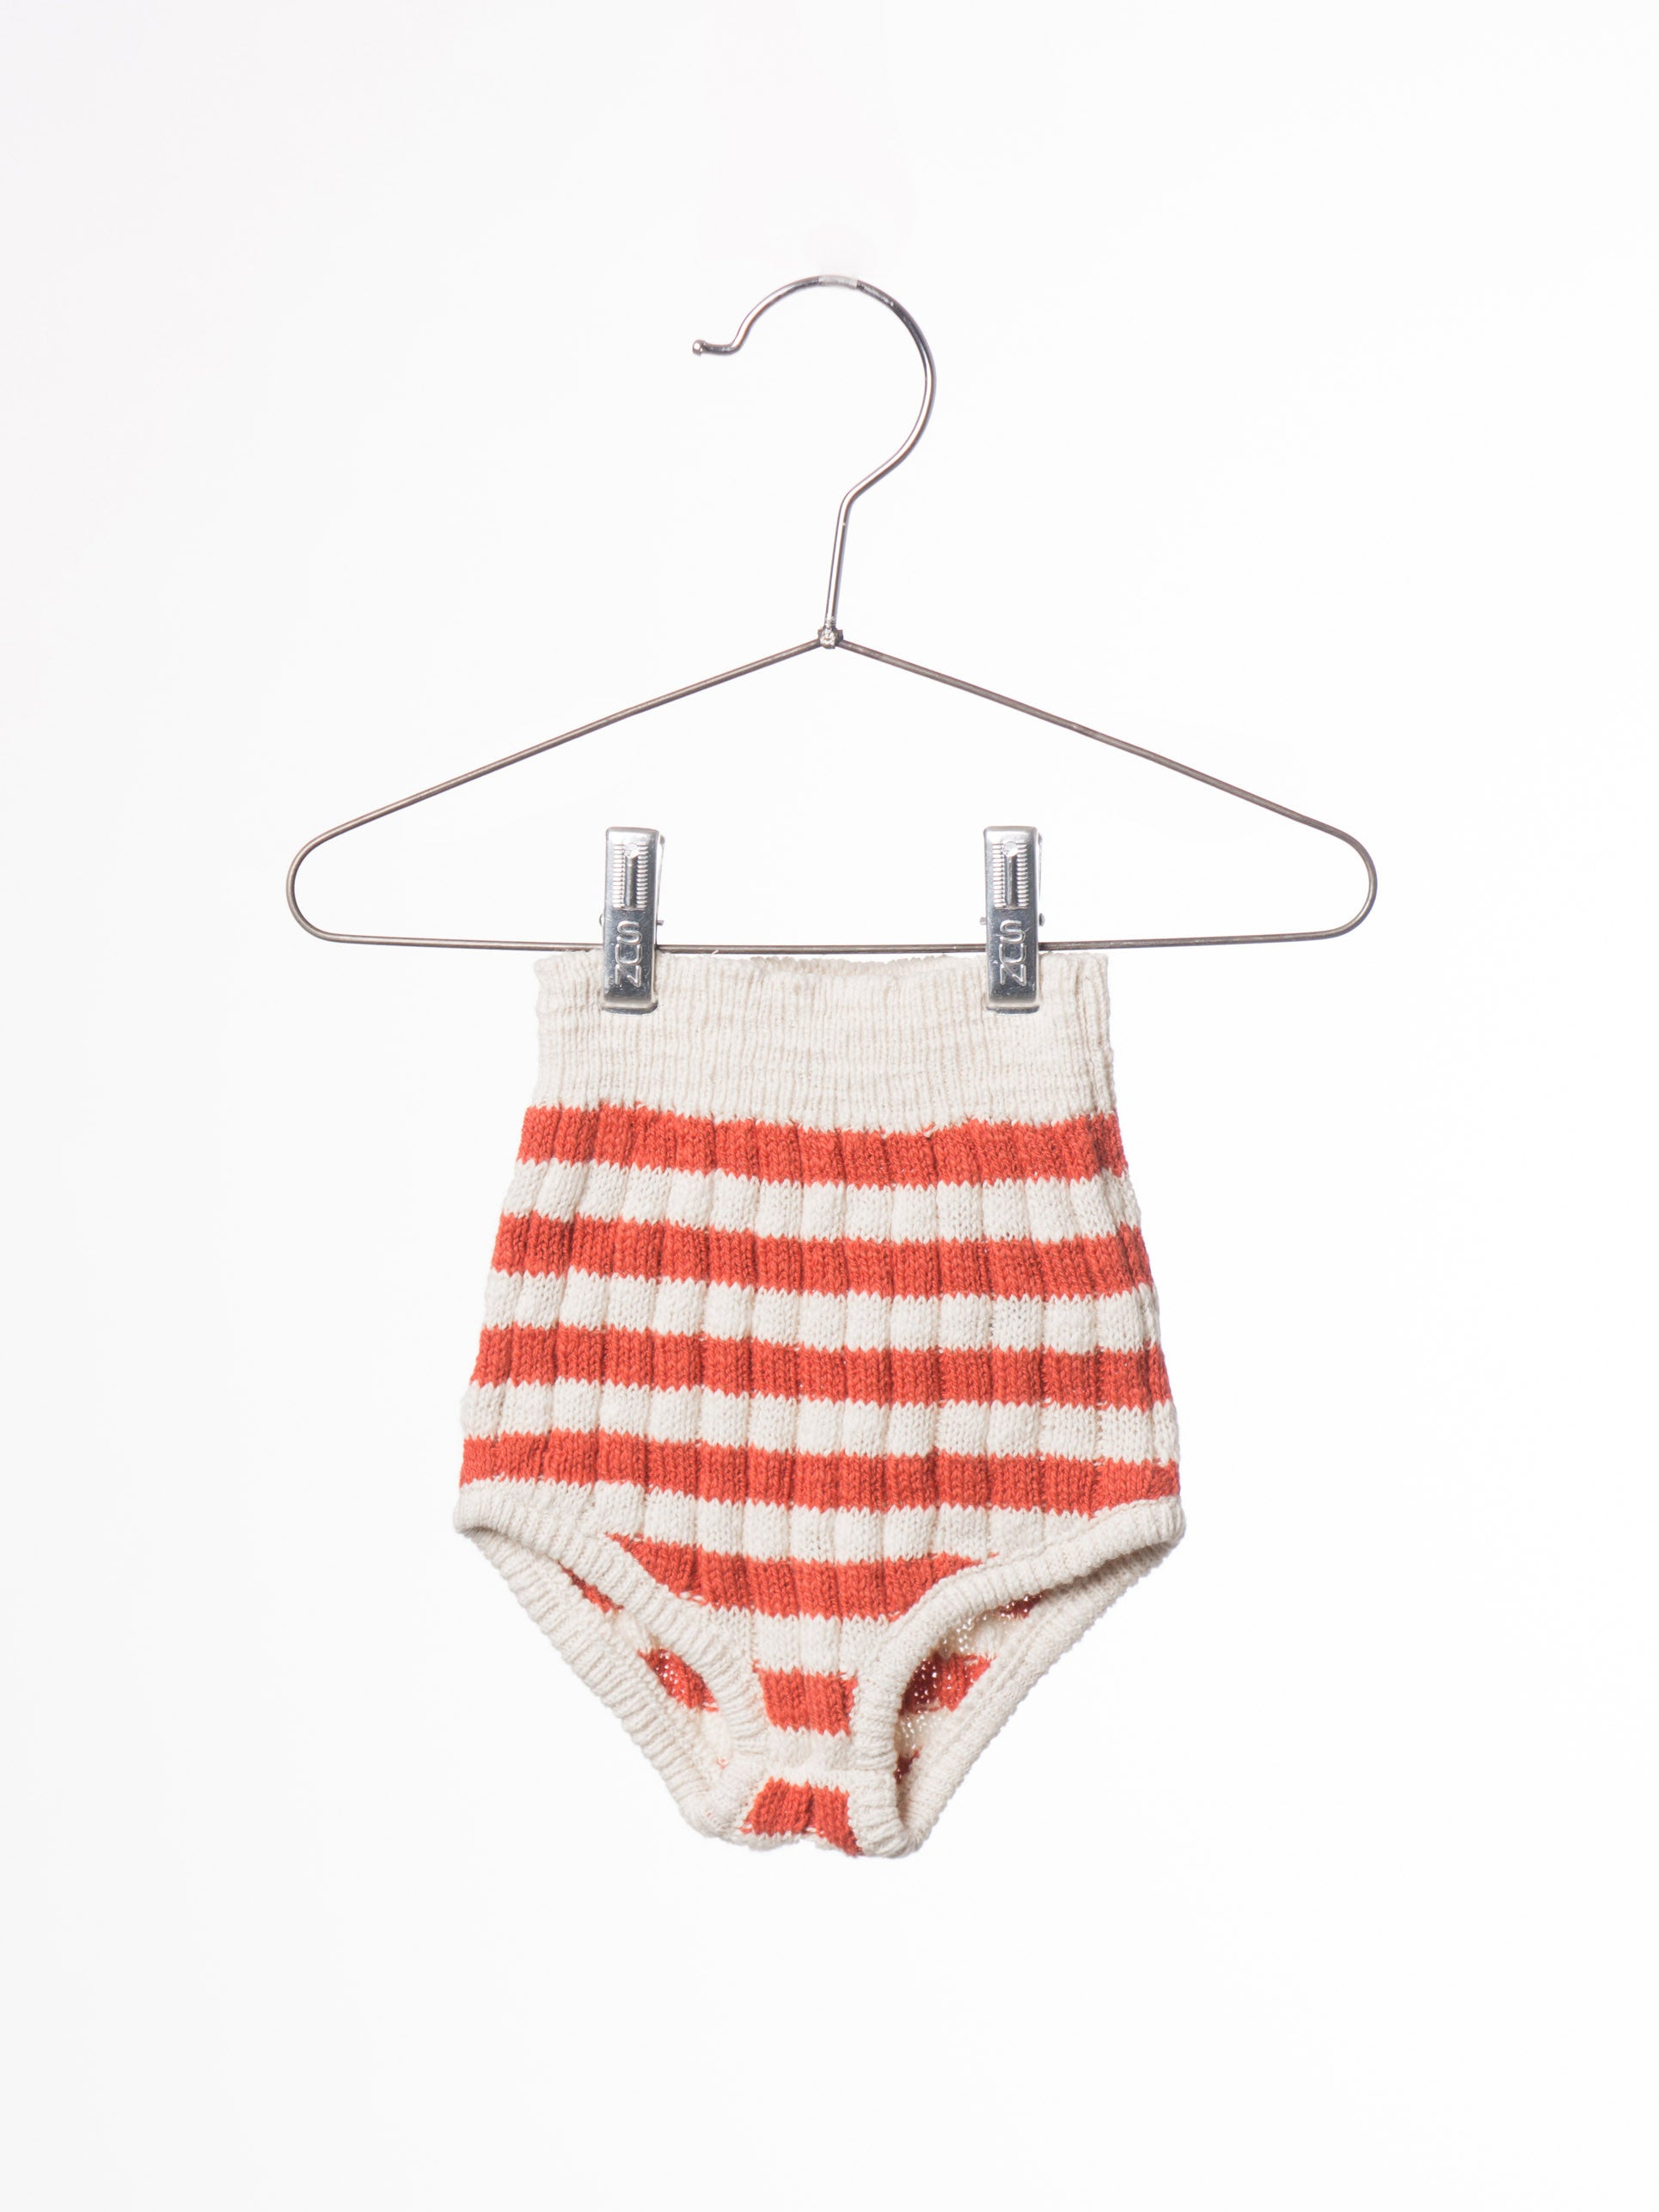 Bobo Choses Red Baby Knitted Culotte - Ladida